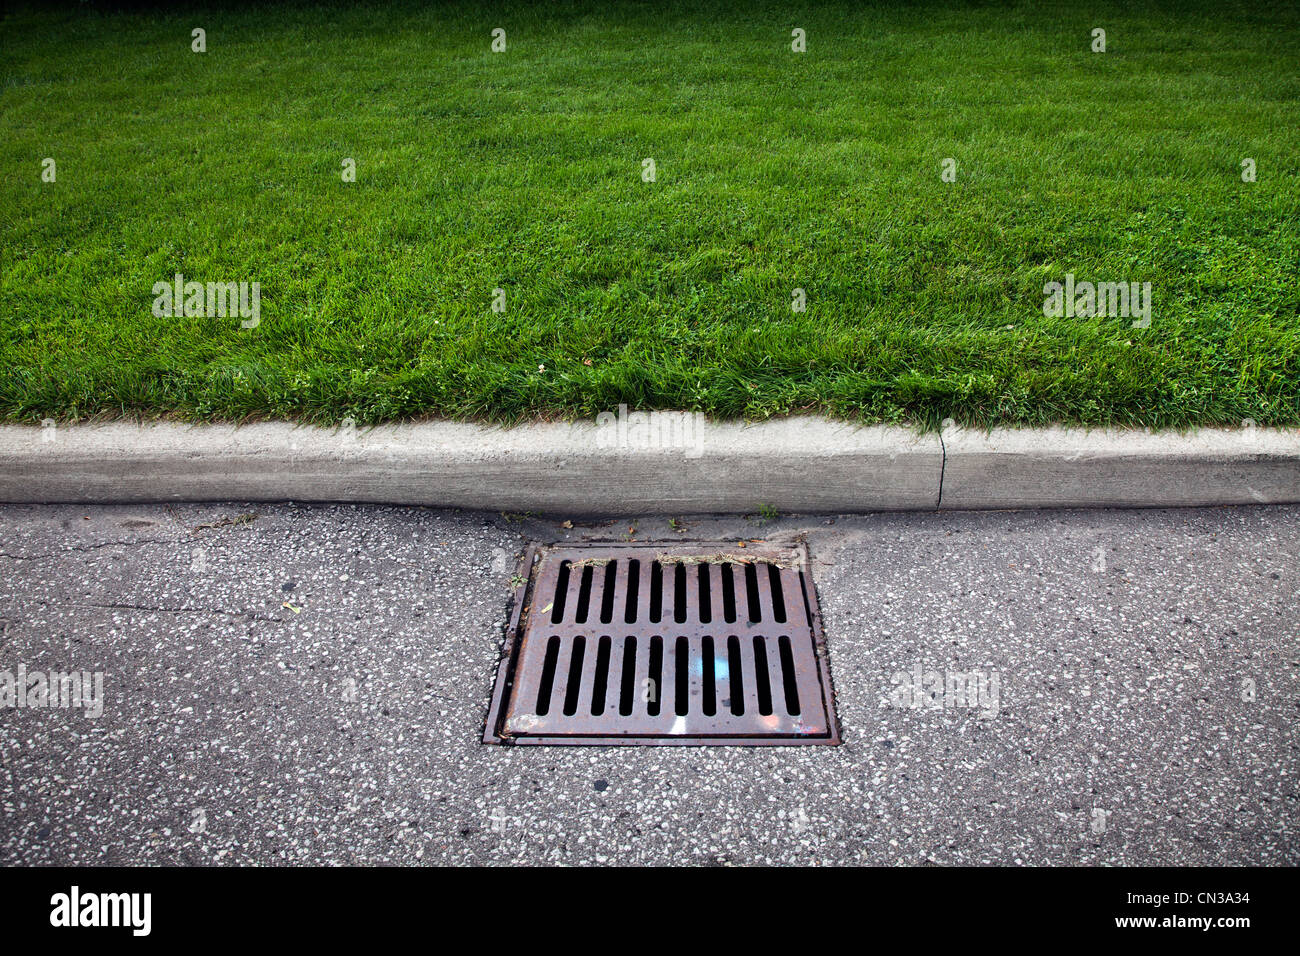 Drain on road - Stock Image